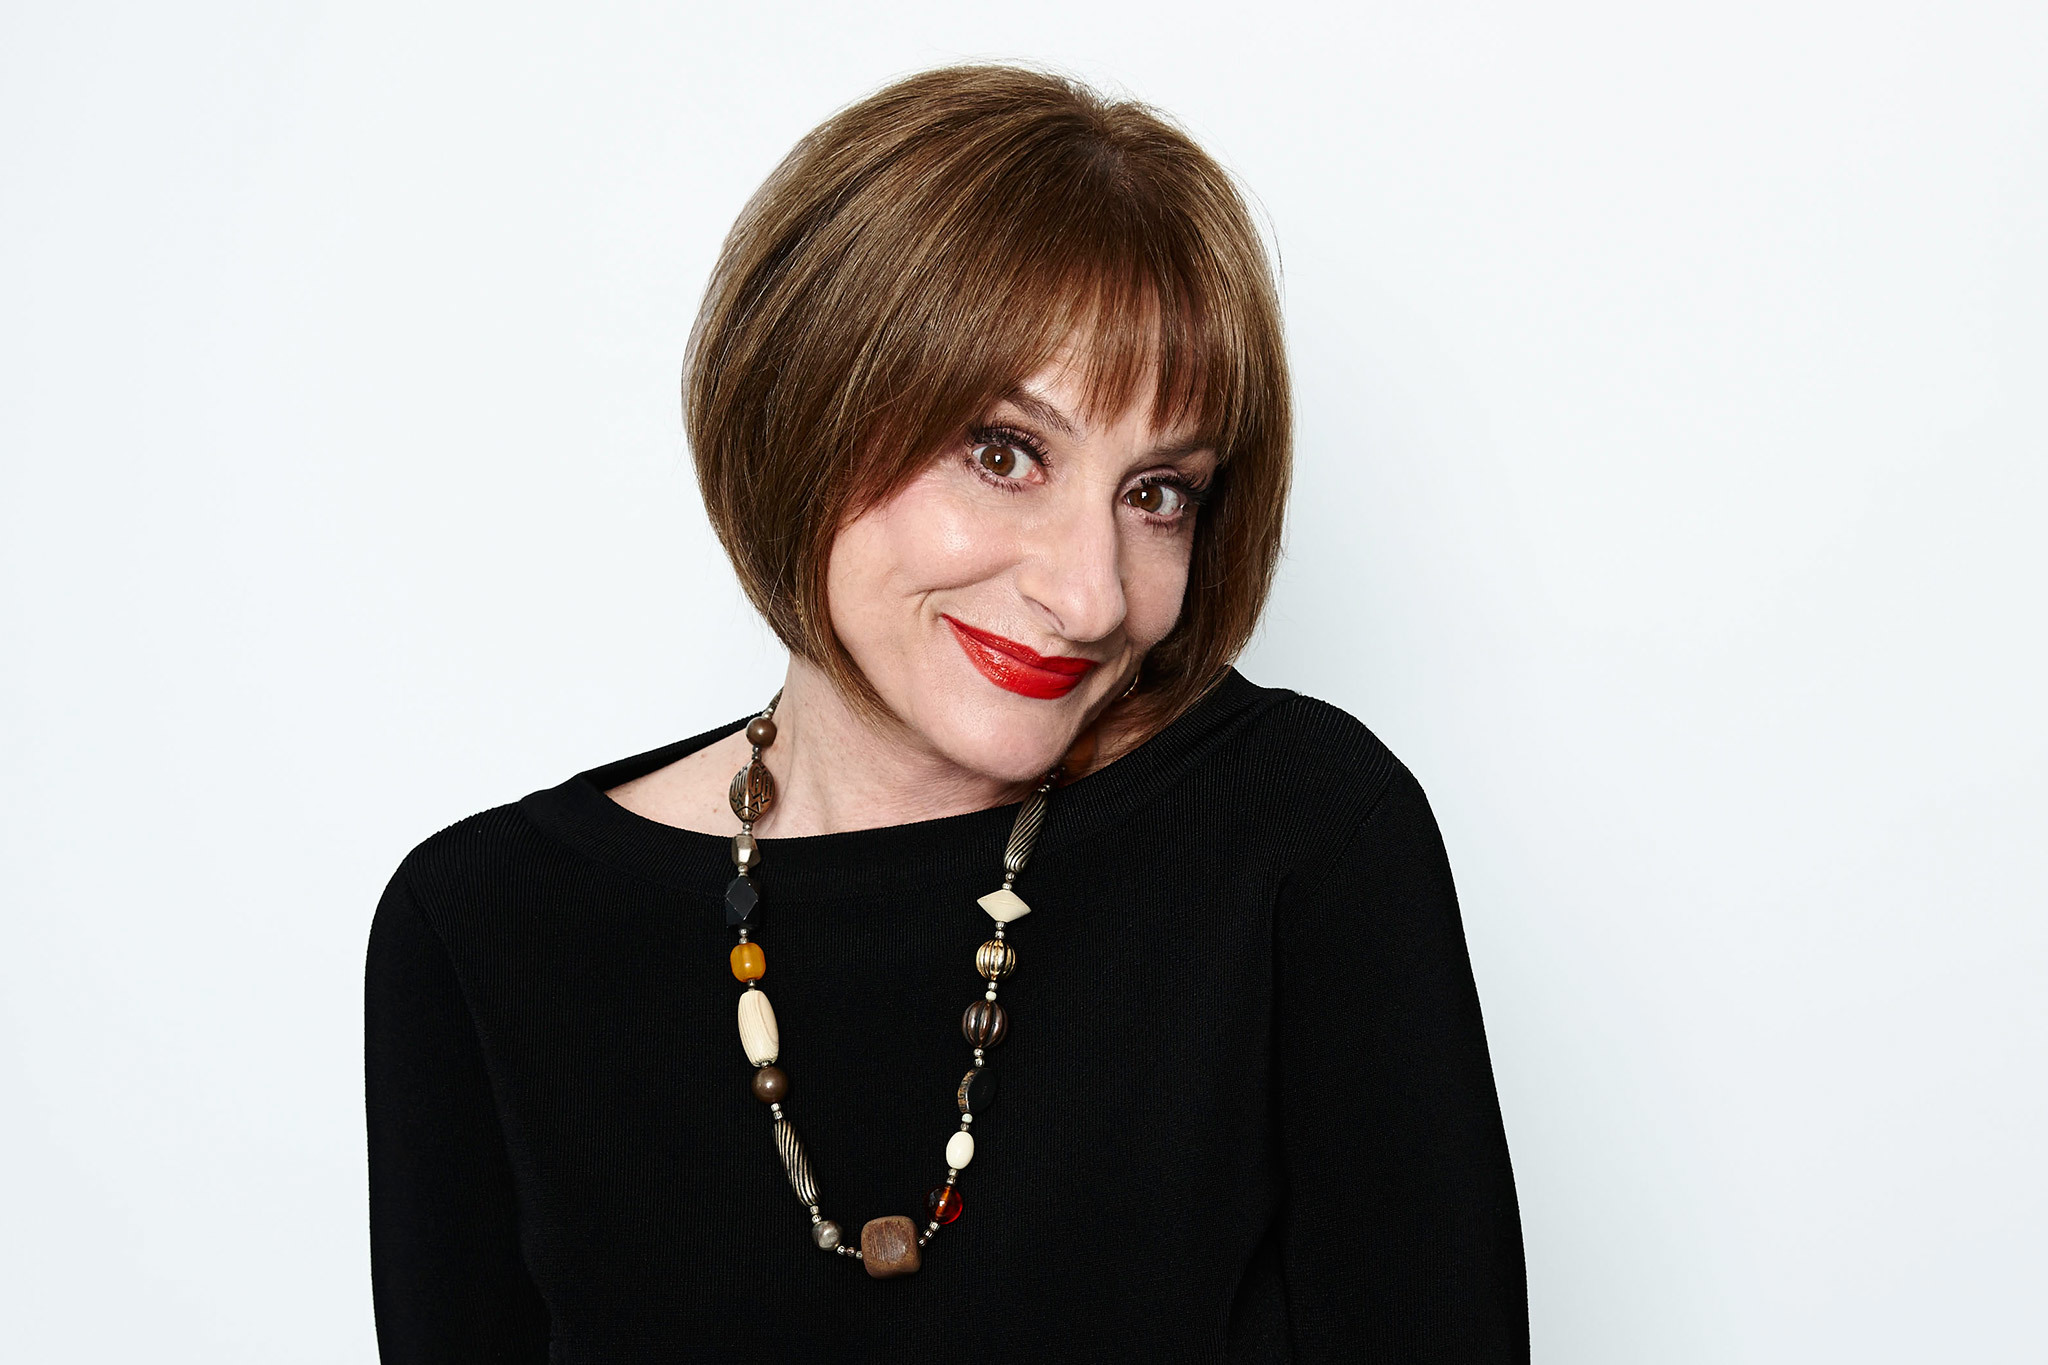 Patti LuPone talks about life as a drama queen on Broadway